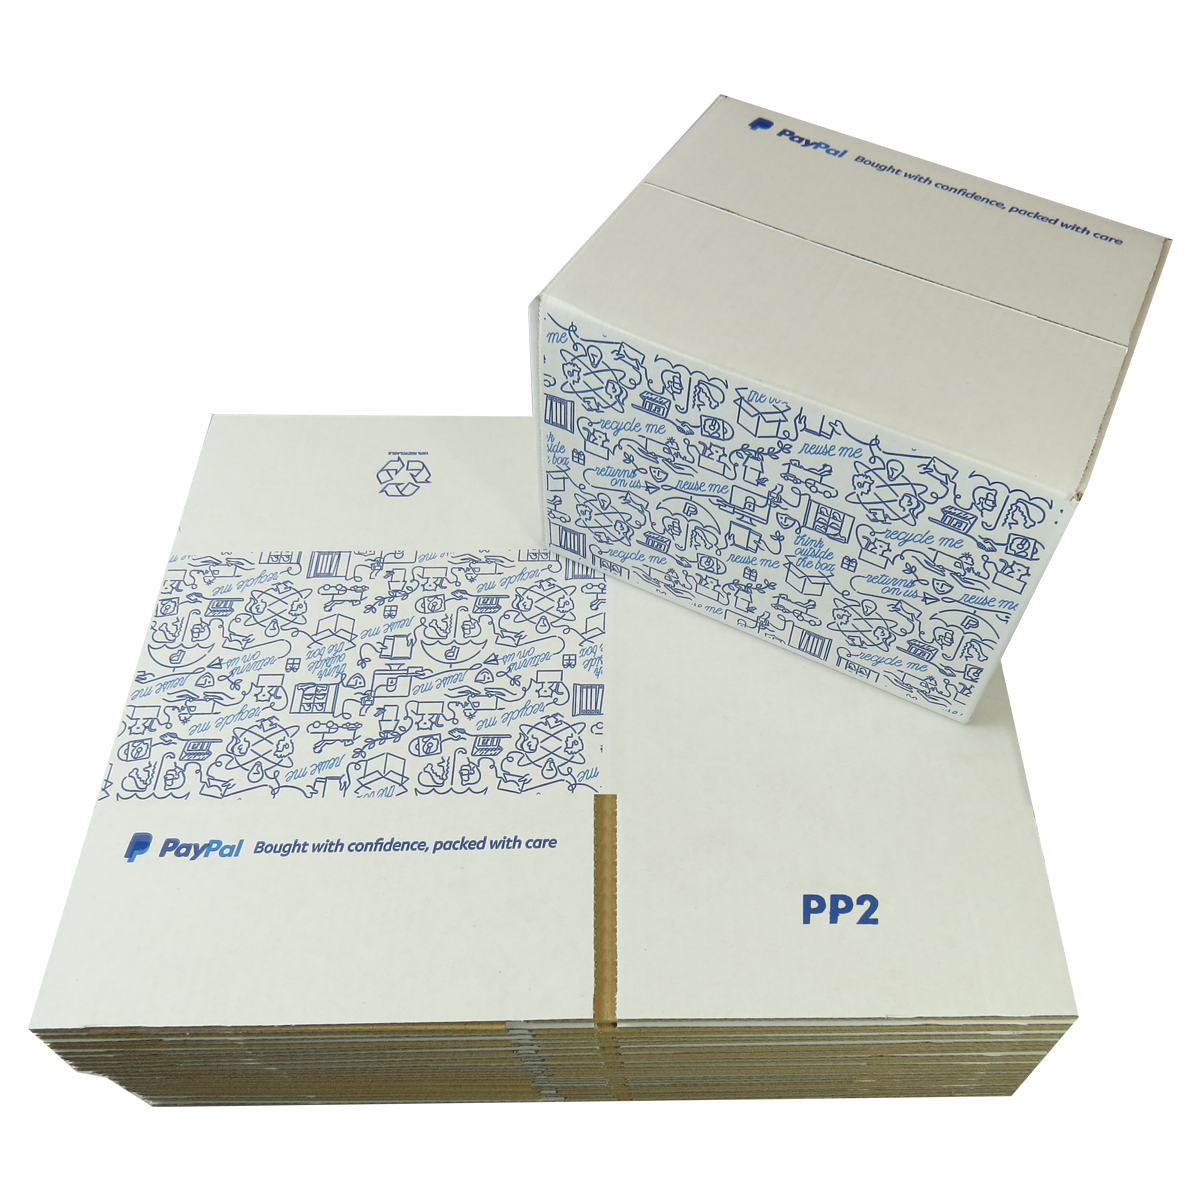 5 x PP2 PayPal Branded Quality White Single Wall Cardboard Postal Mailing Boxes 215x180x135mm